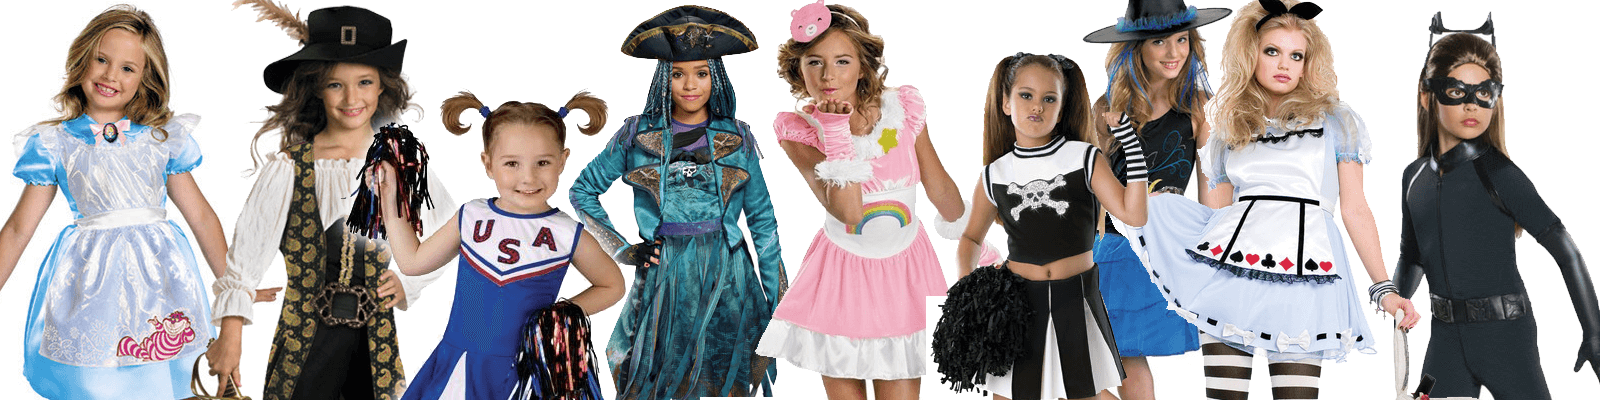 6b88f587329 Girls Halloween Costumes - 2019's Best Girls Costumes for Halloween ...